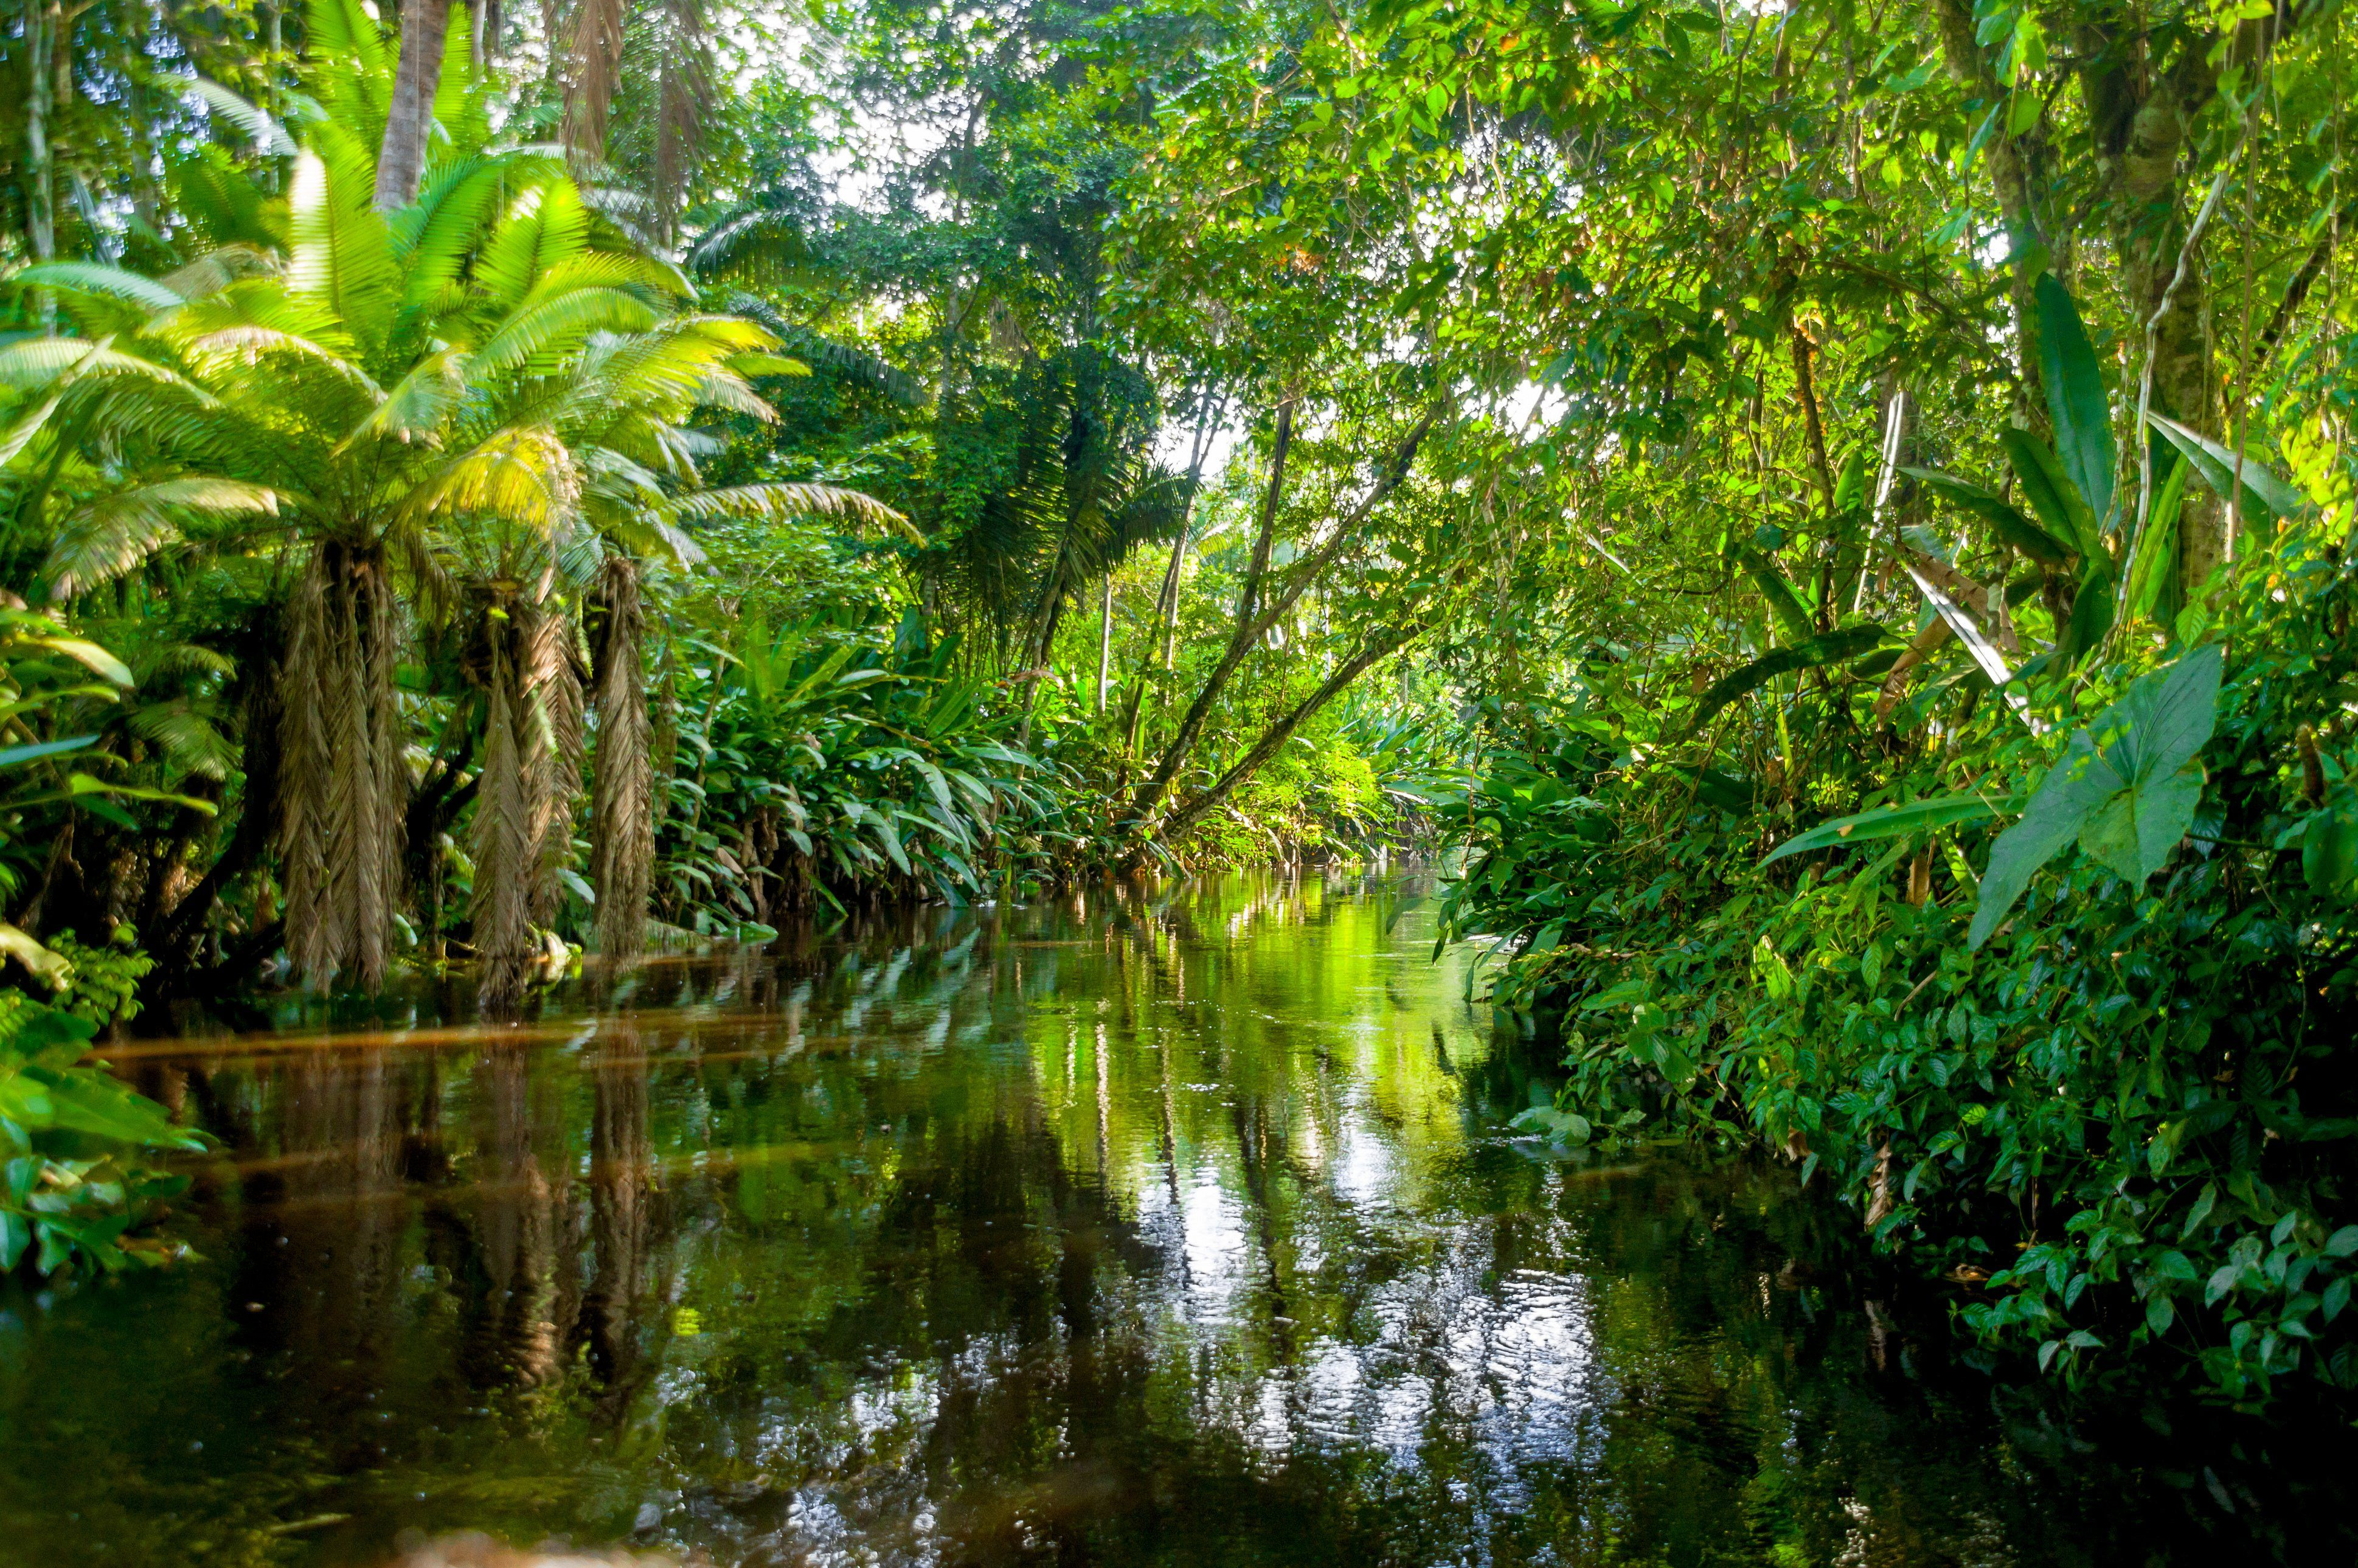 8 Things That Could Happen if the Amazon Rainforest Disappeared